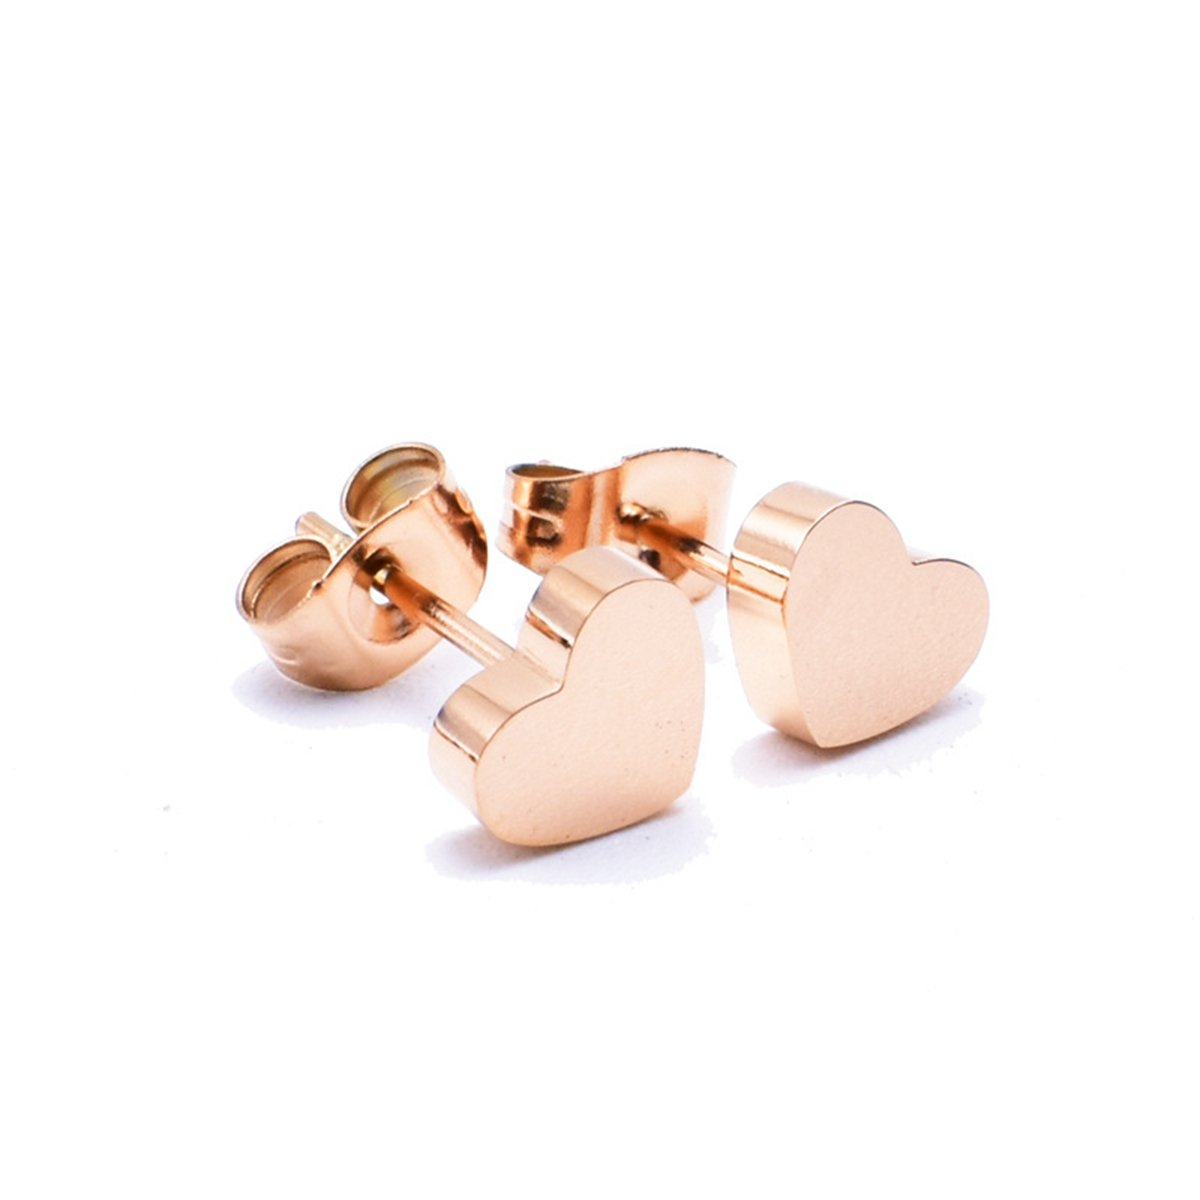 14K Rose Gold Plated Stud Earring, Stainless Steel A Pair with Gift Box, 8mm Heart Earrings RE03 M&T 2007 B0722GGB59_US